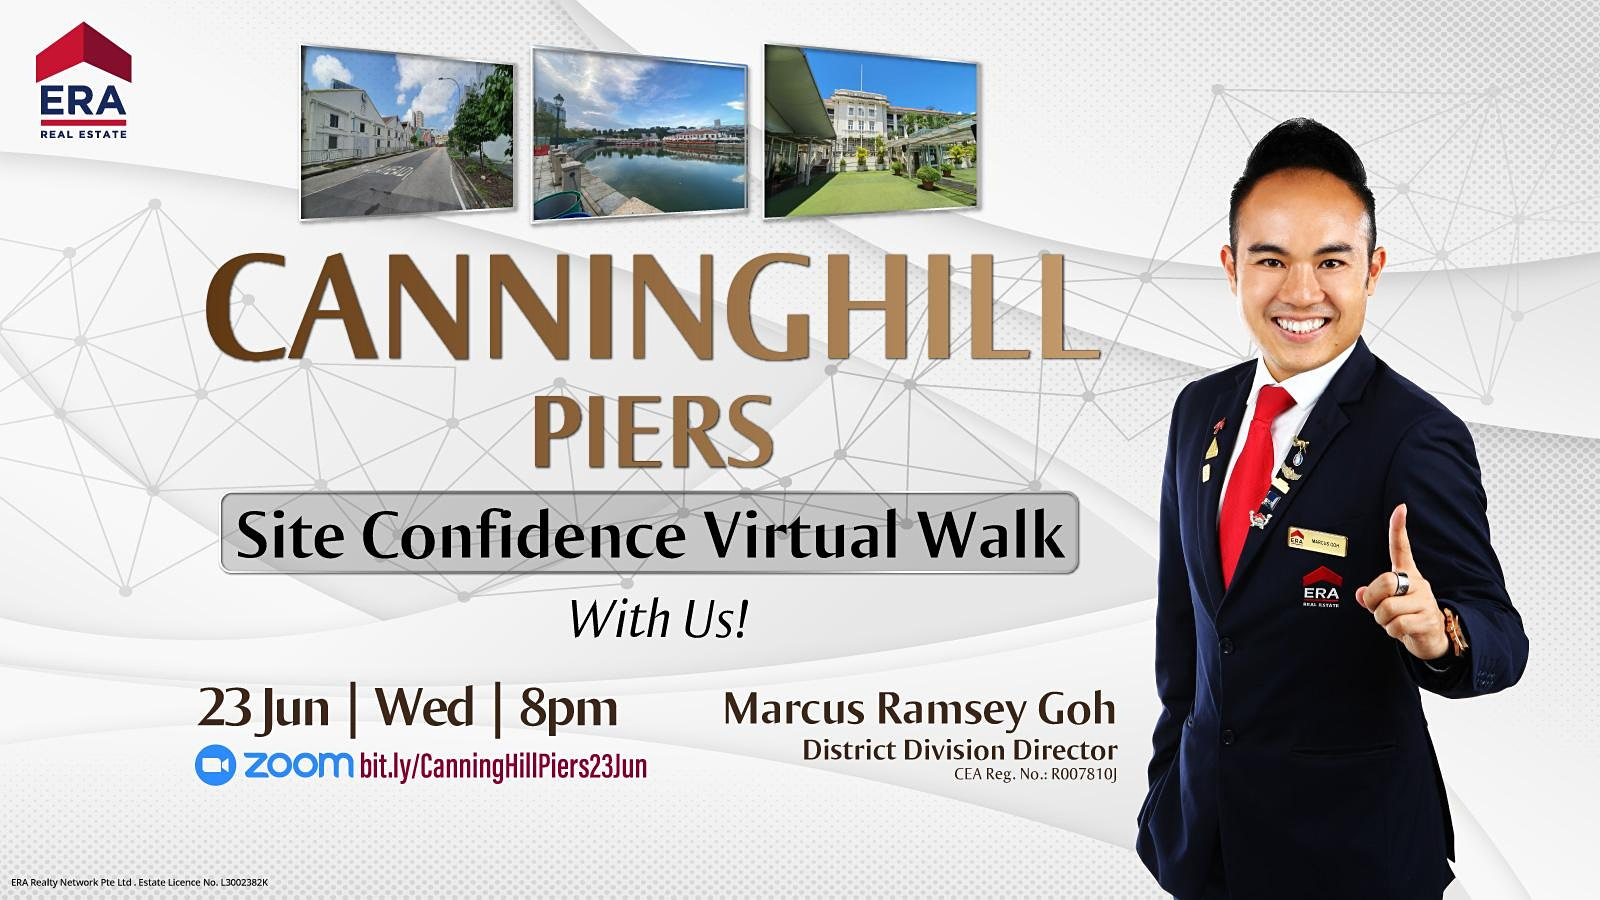 CanningHill Piers - Site Confidence Virtual Walk With Us